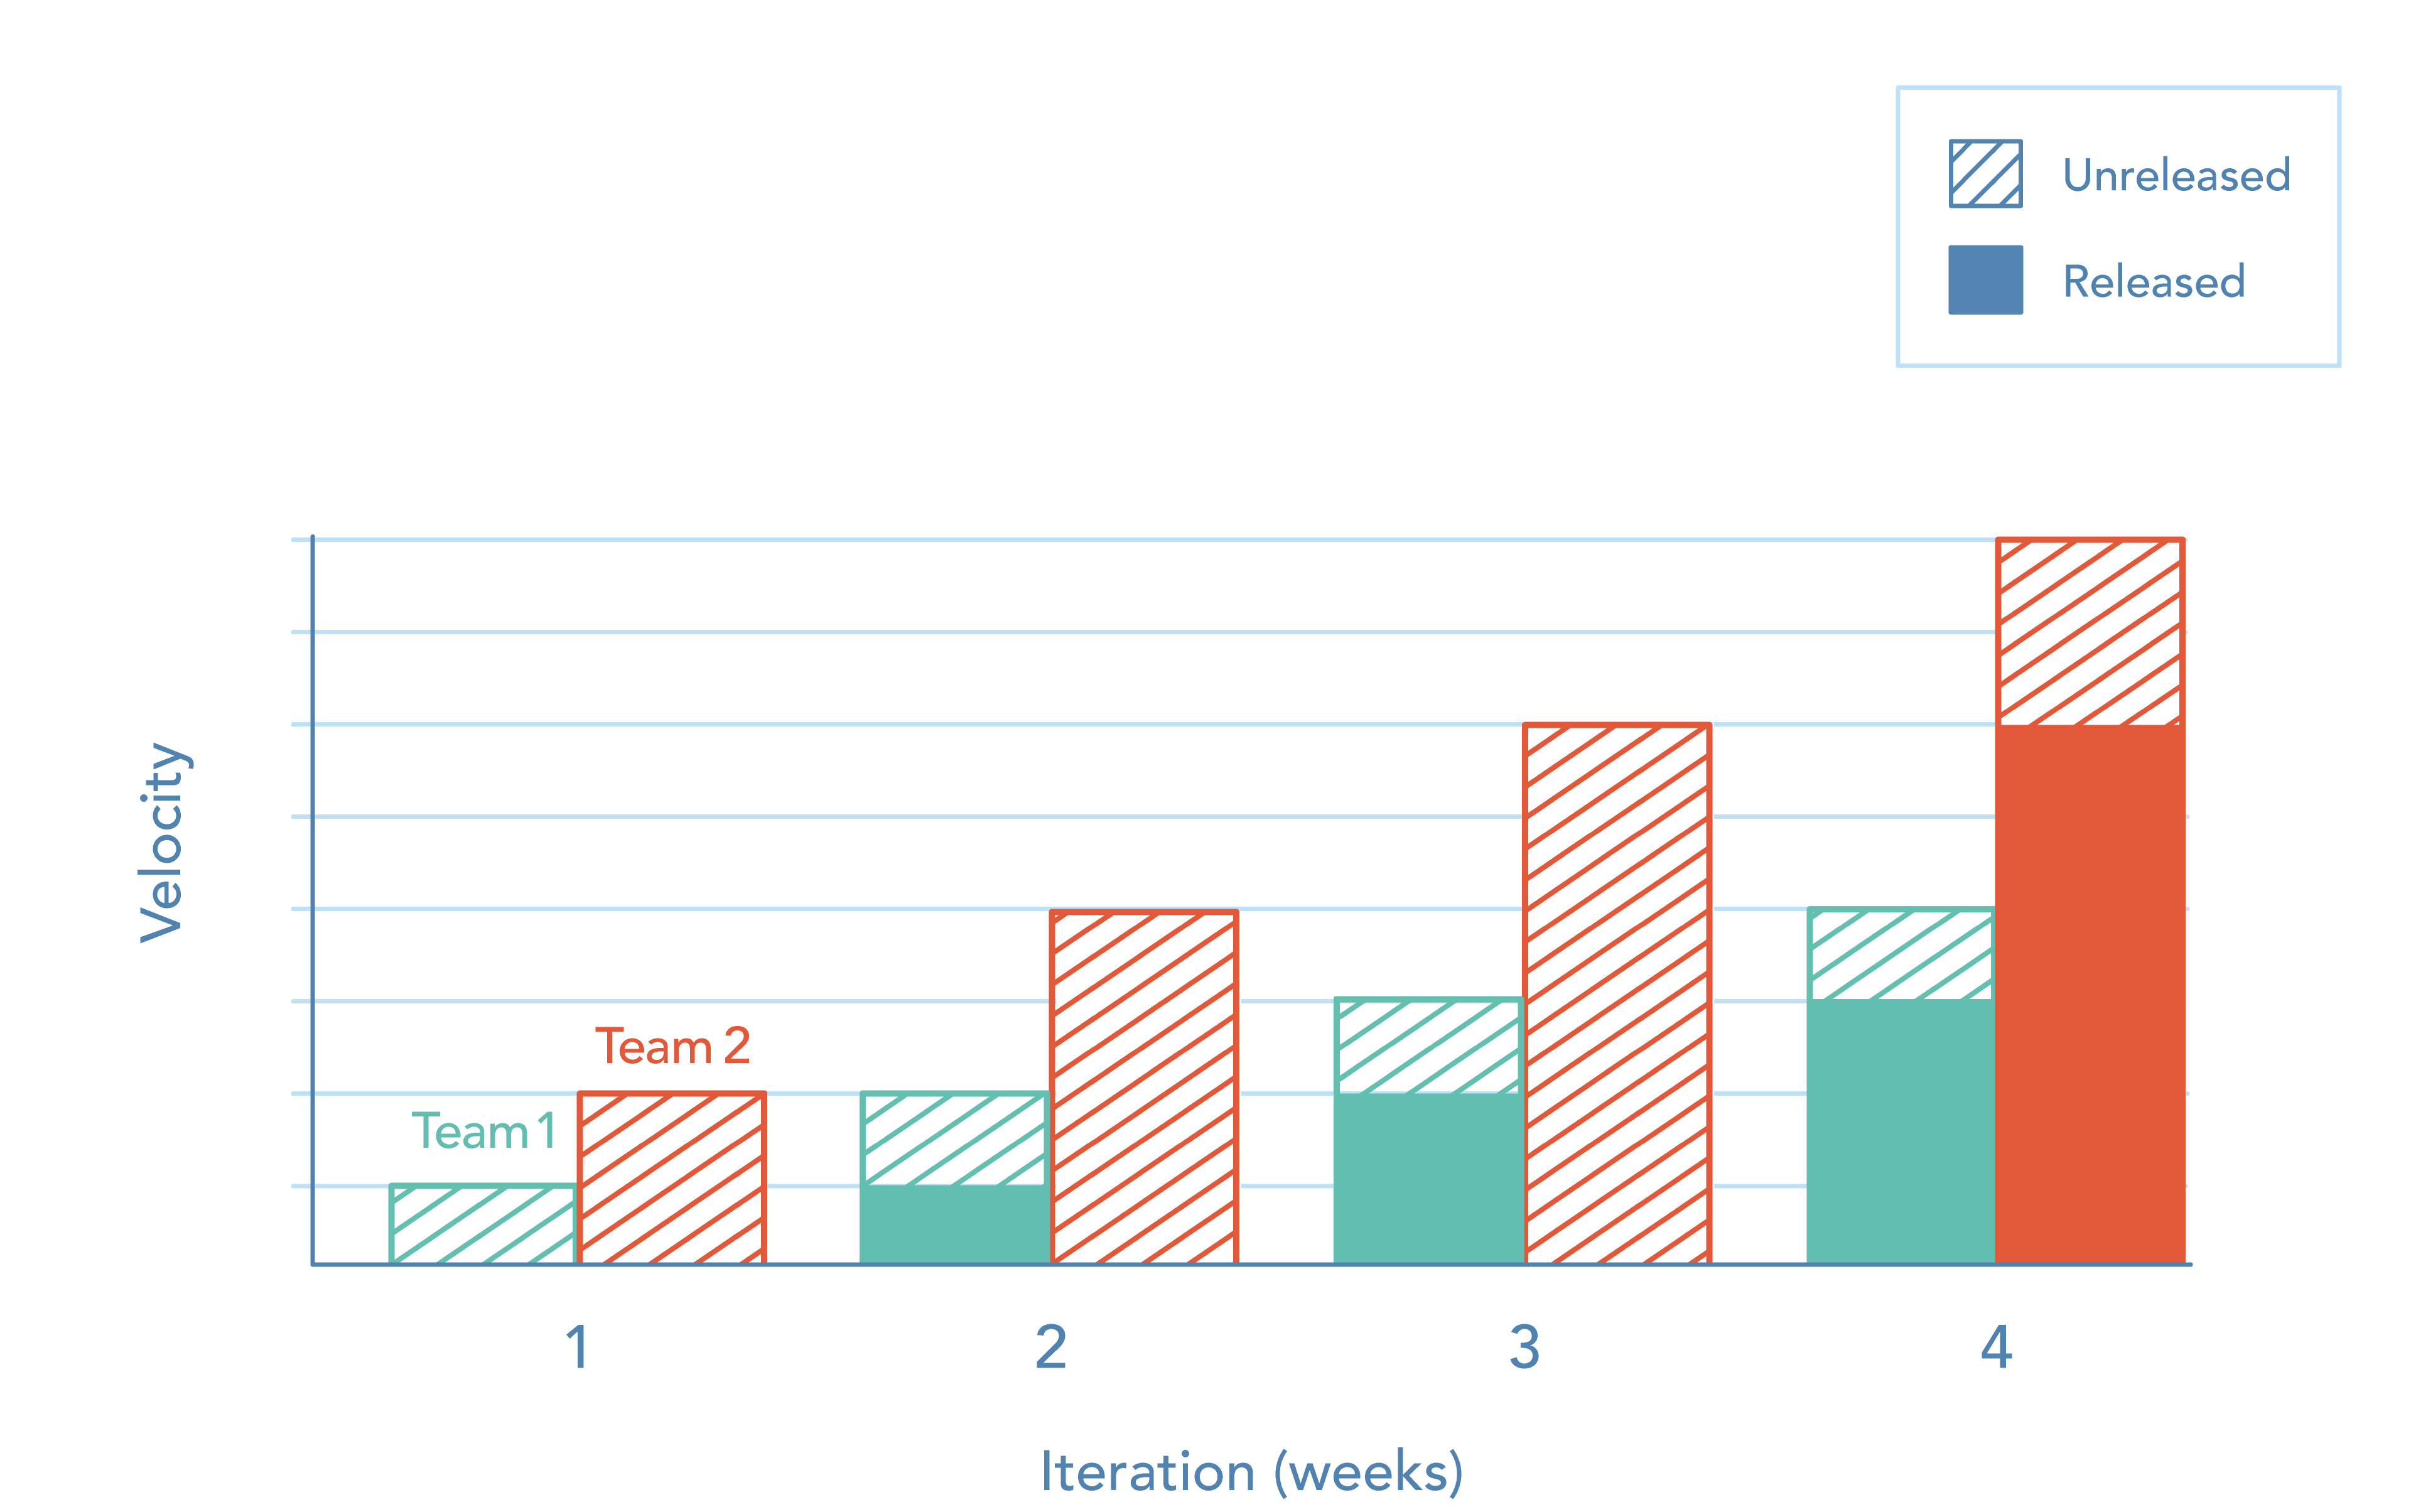 A chart comparing the velocity of two software development teams over several iterations